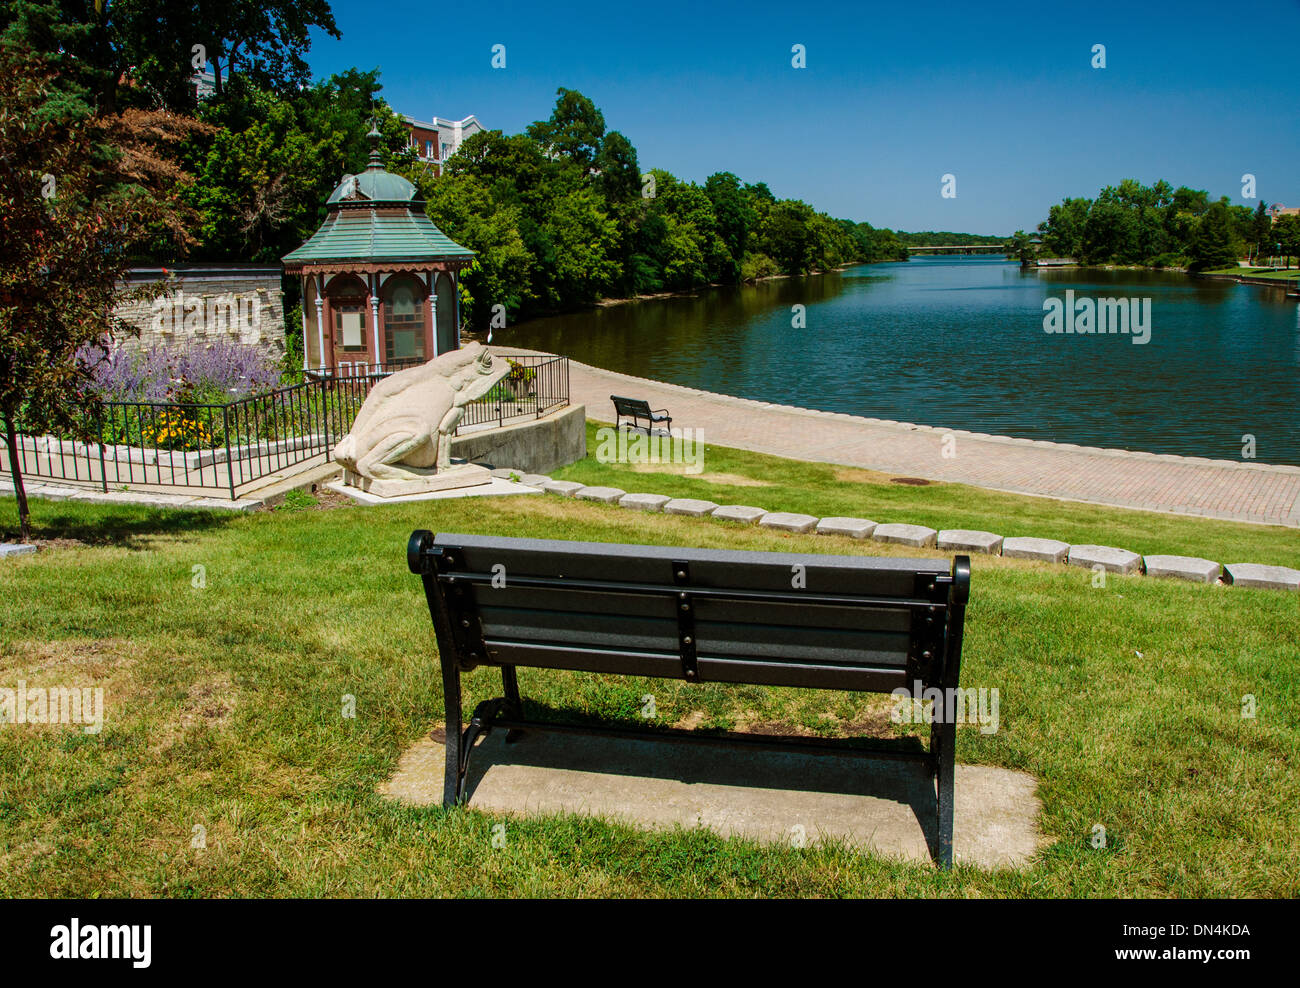 Park bench overlooking the Fox River in Batavia, Illinois, a town along the Lincoln Highway - Stock Image